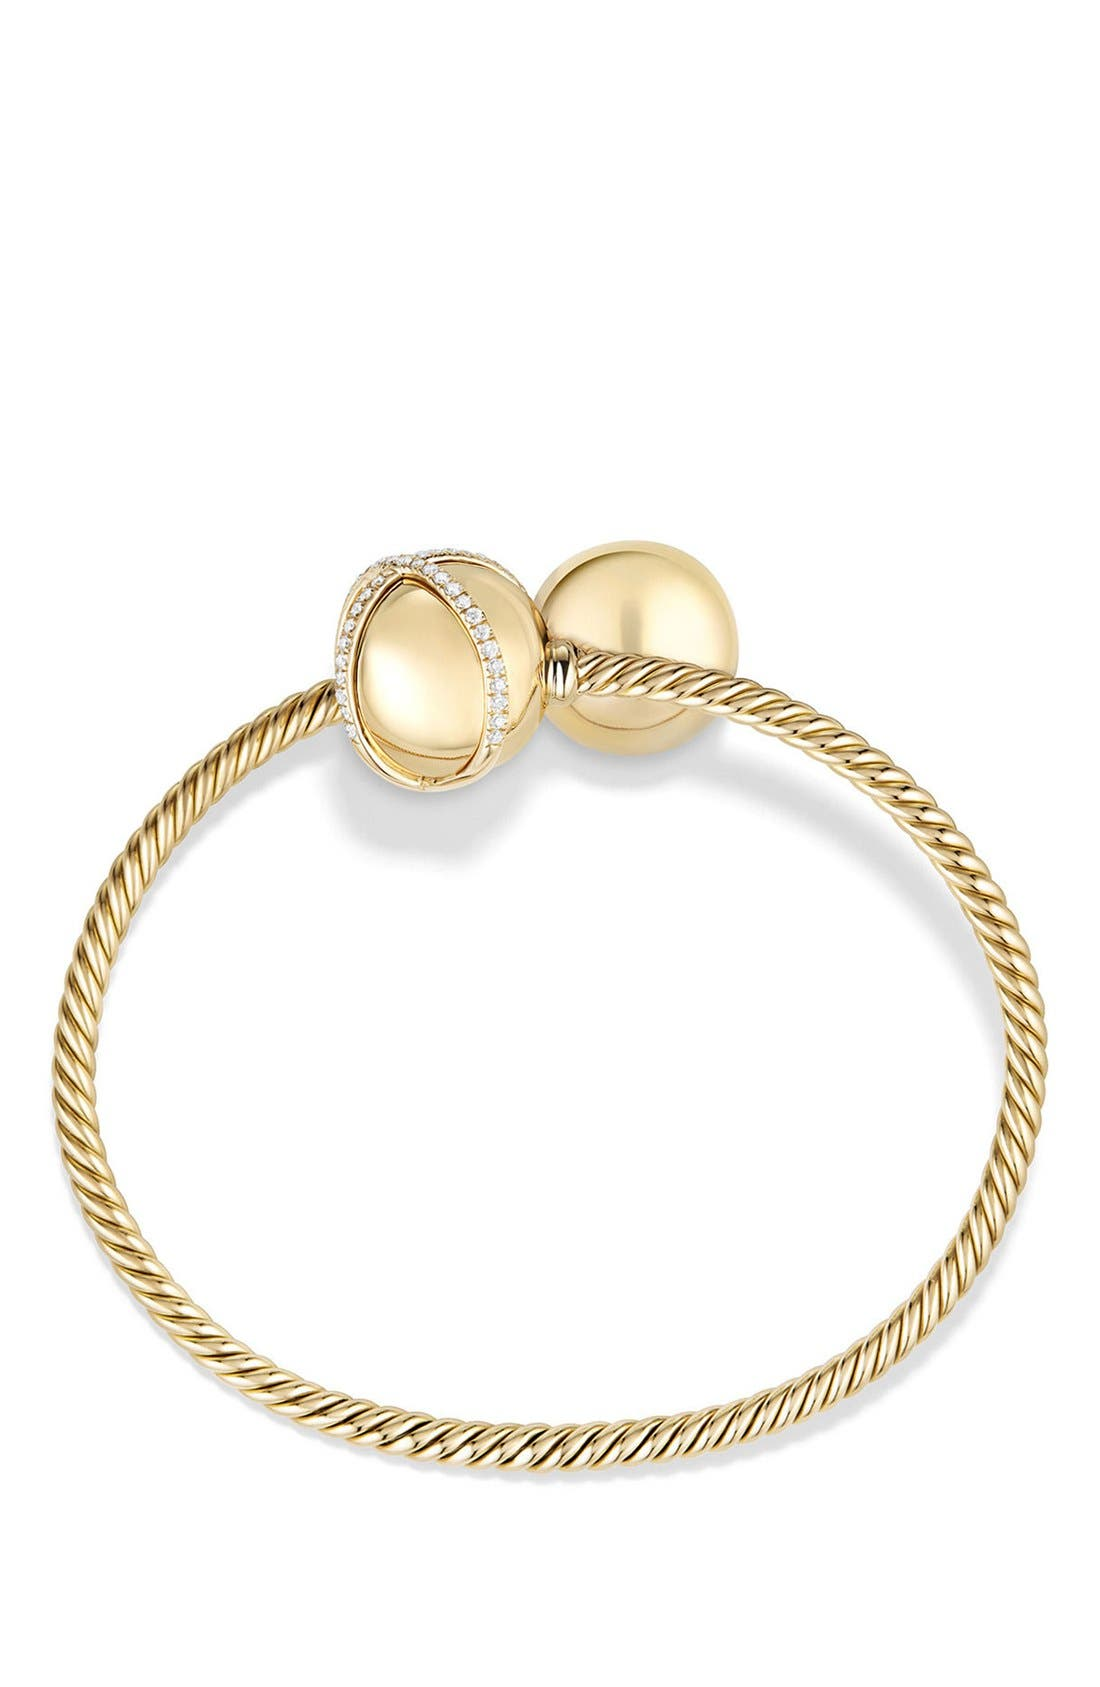 'Solari Bypass' Bracelet with Diamonds in 18K Gold,                             Alternate thumbnail 2, color,                             YELLOW GOLD